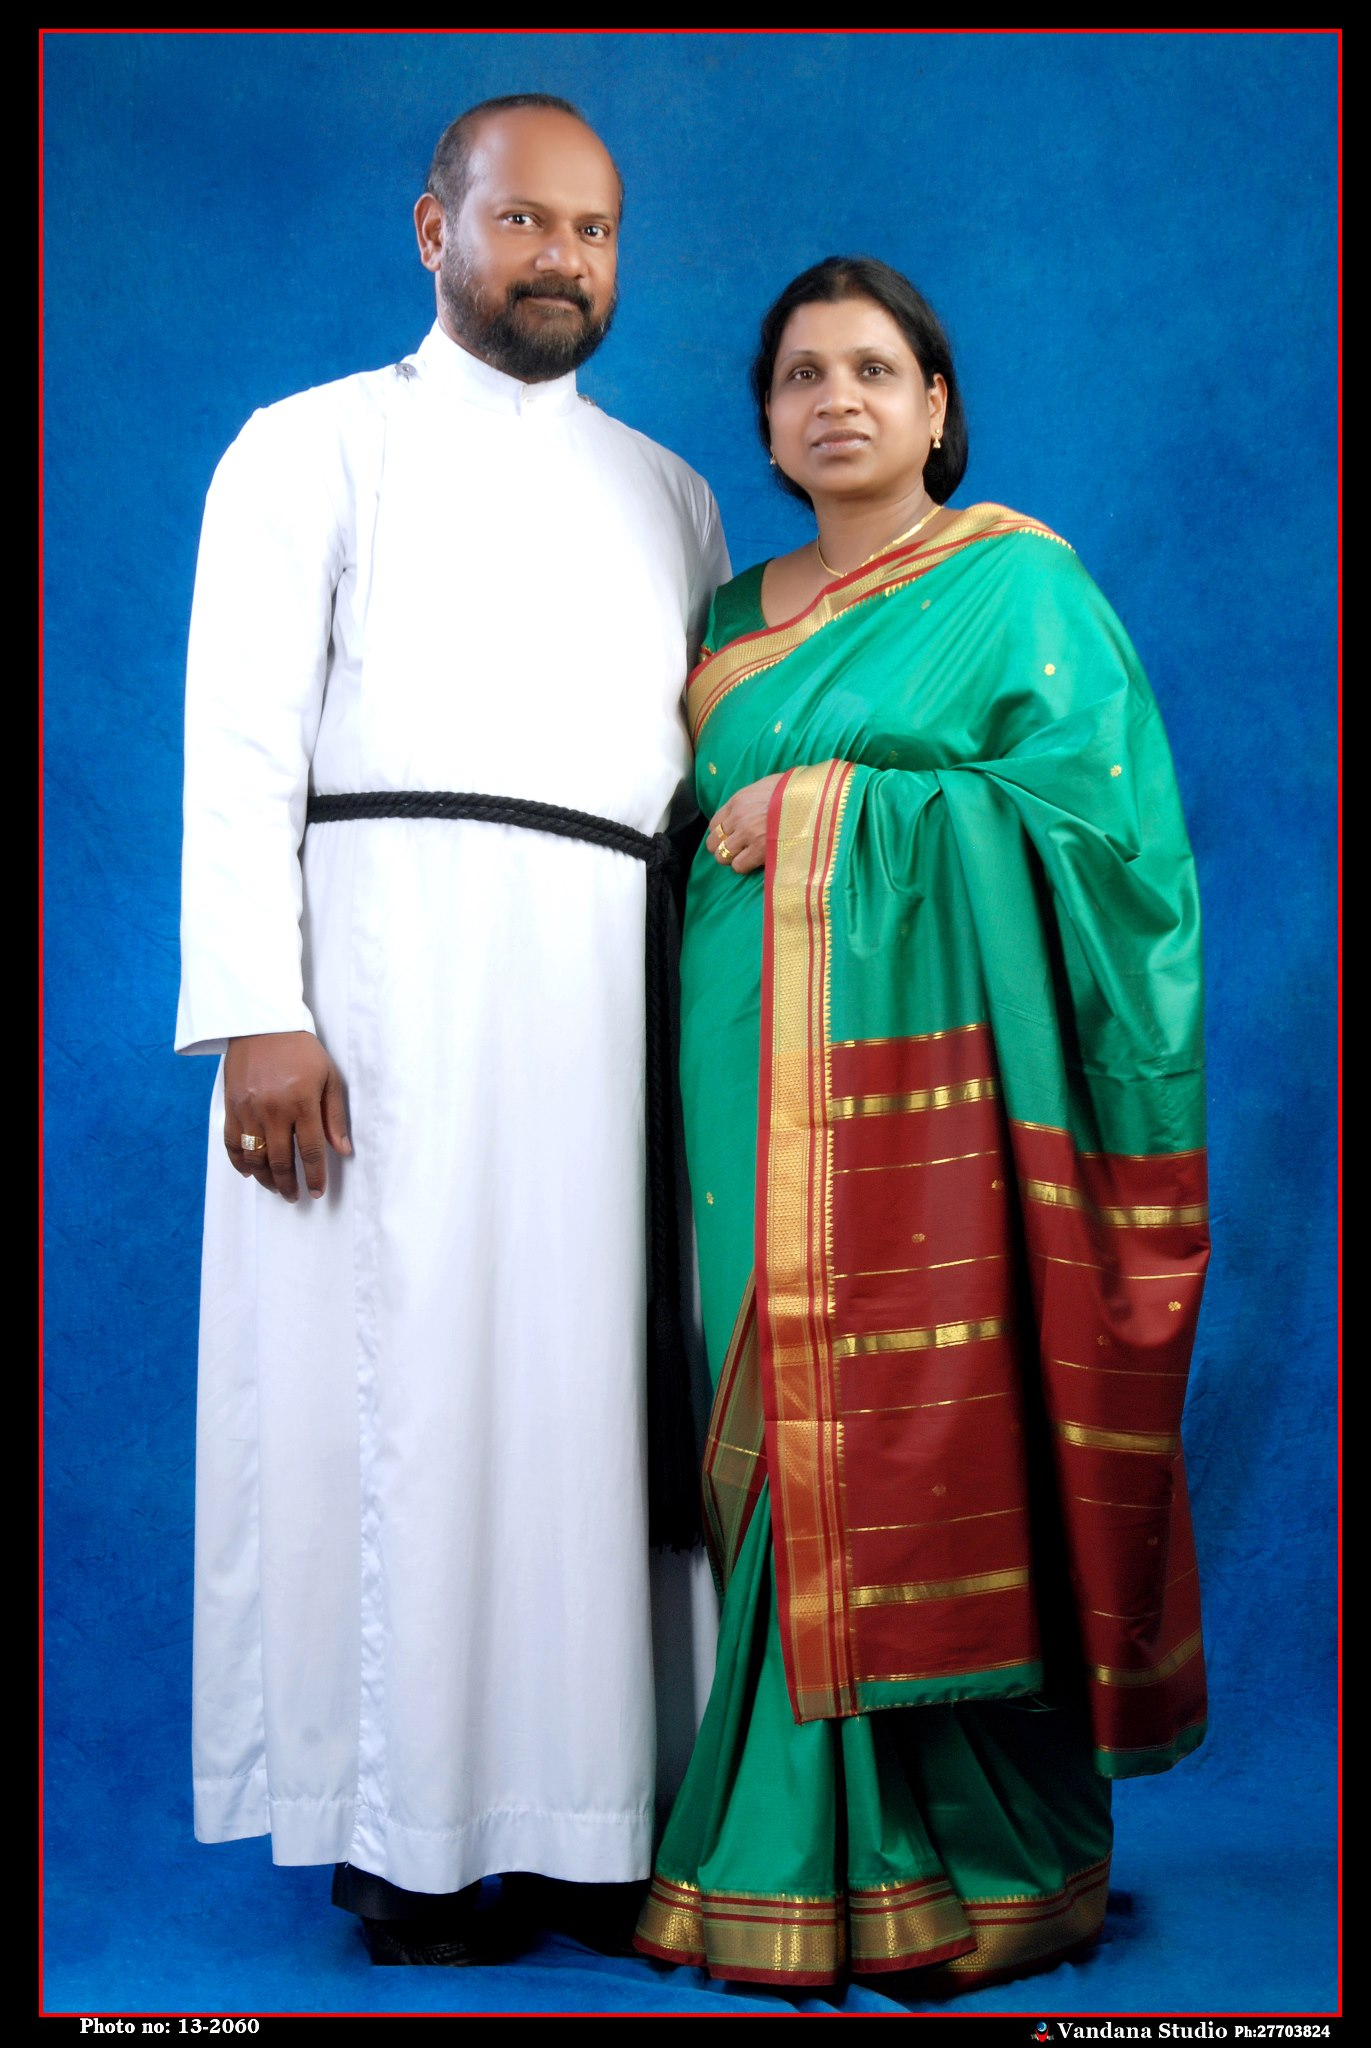 Rev. Aniyan K. Paul & Kochamma